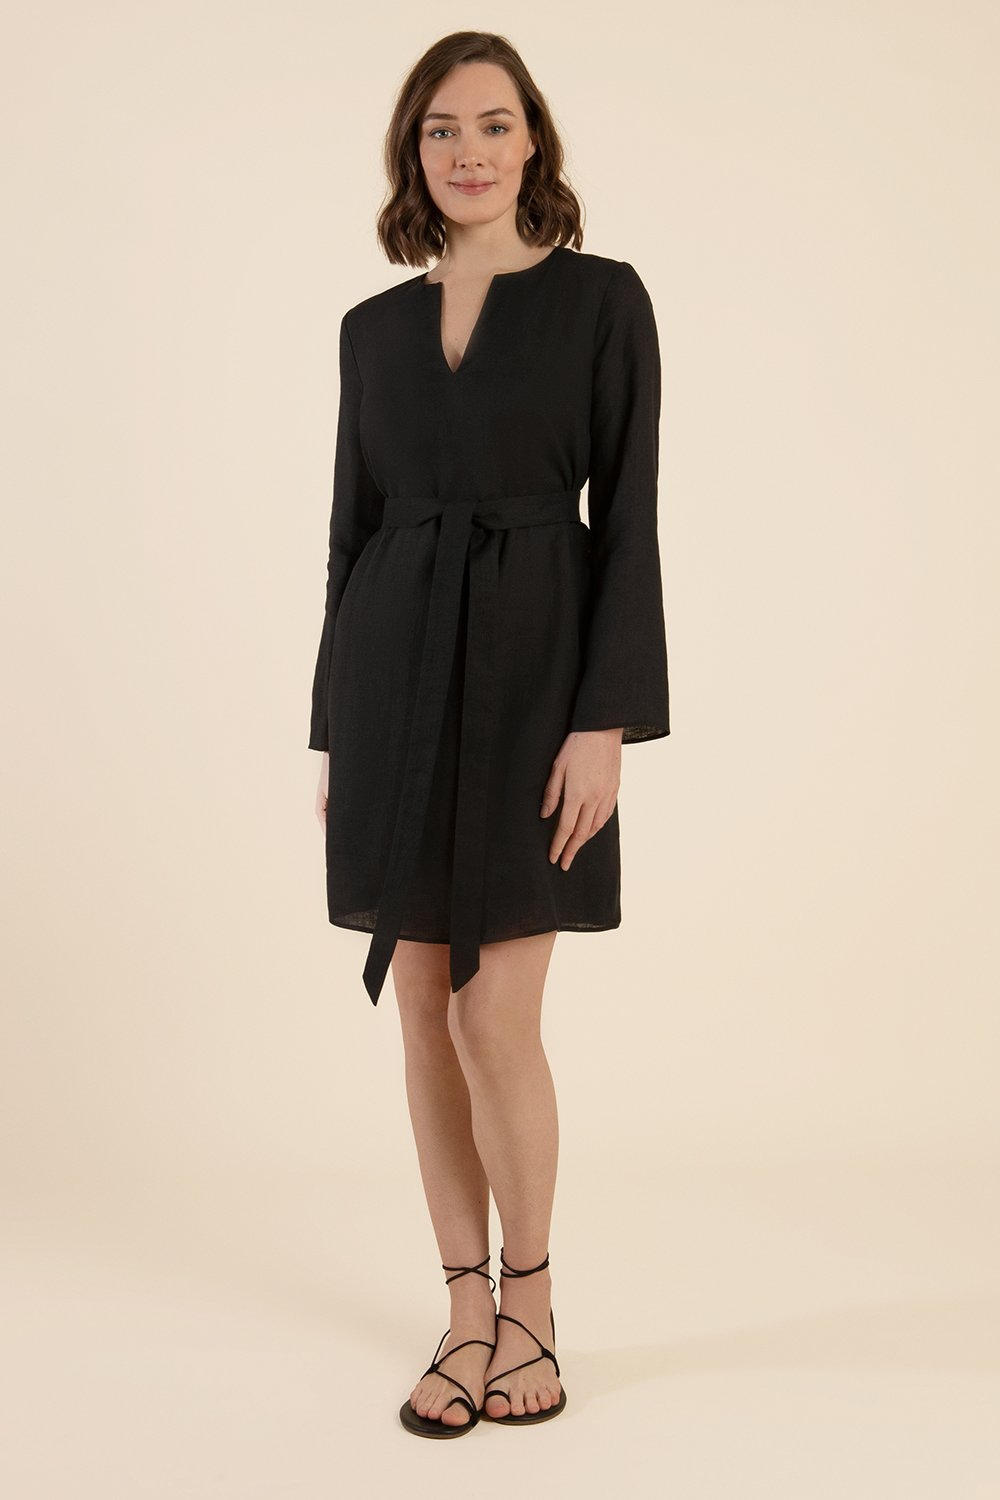 Black Linen Dress With Sleeves